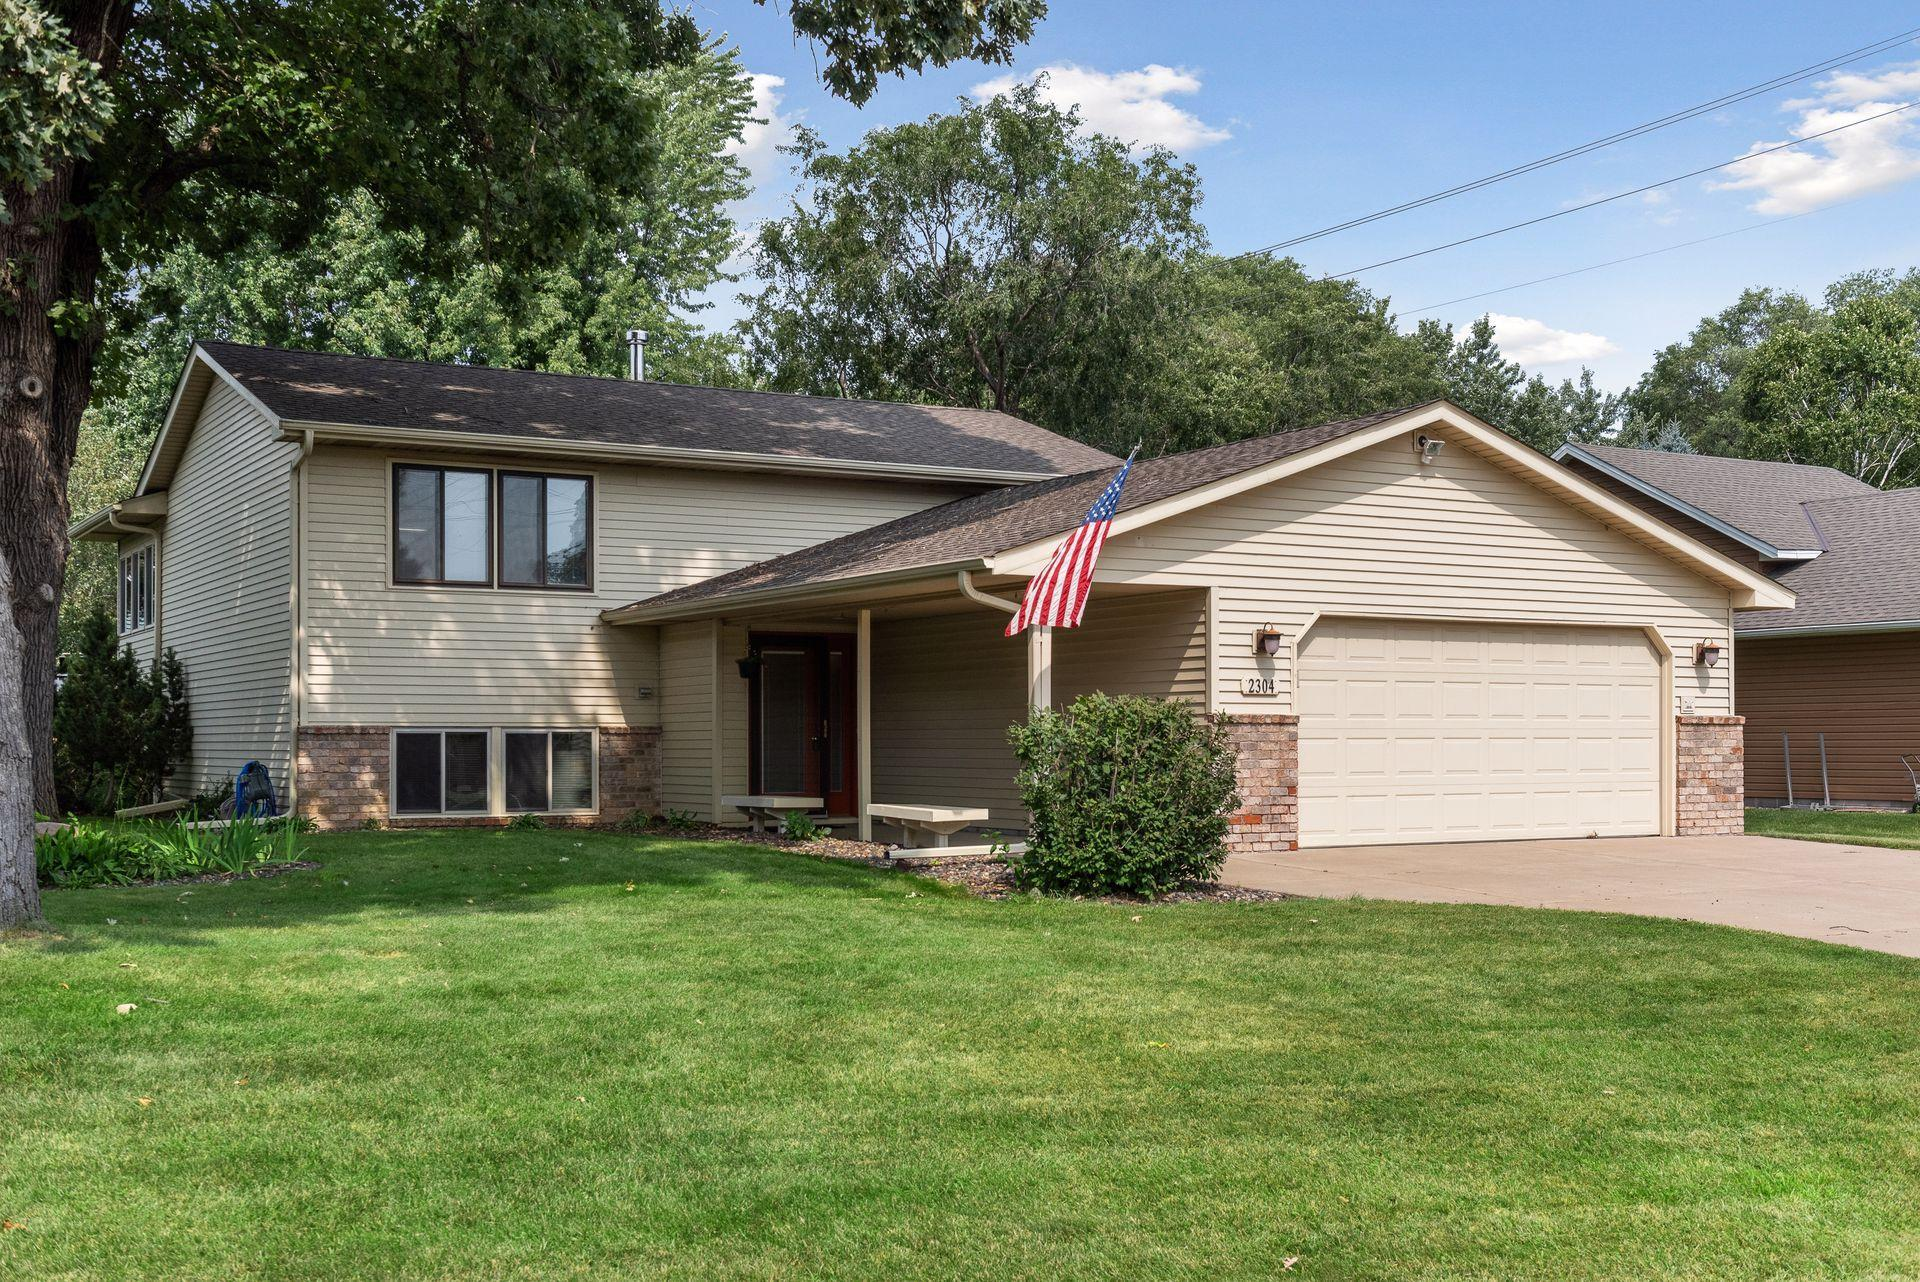 2304 94th Way Property Photo - Brooklyn Park, MN real estate listing